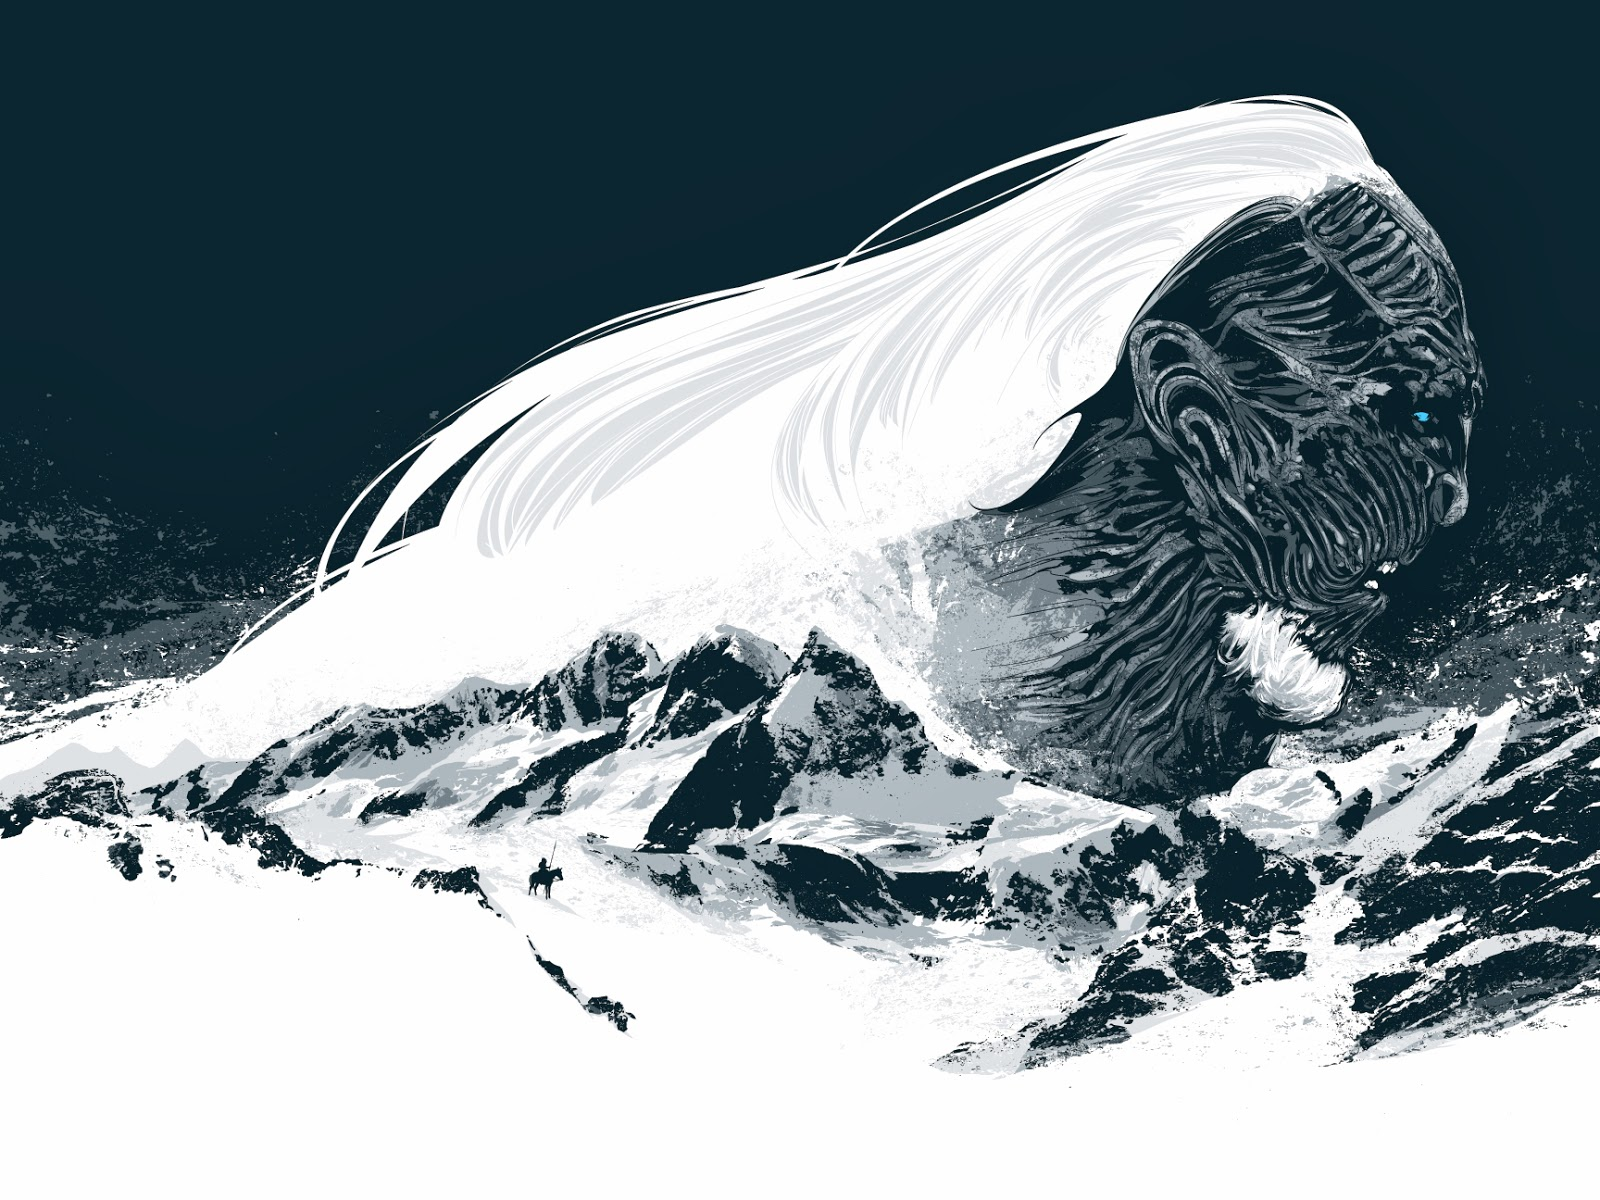 INSIDE THE ROCK POSTER FRAME BLOG: Winter is Coming Game of Thrones ...